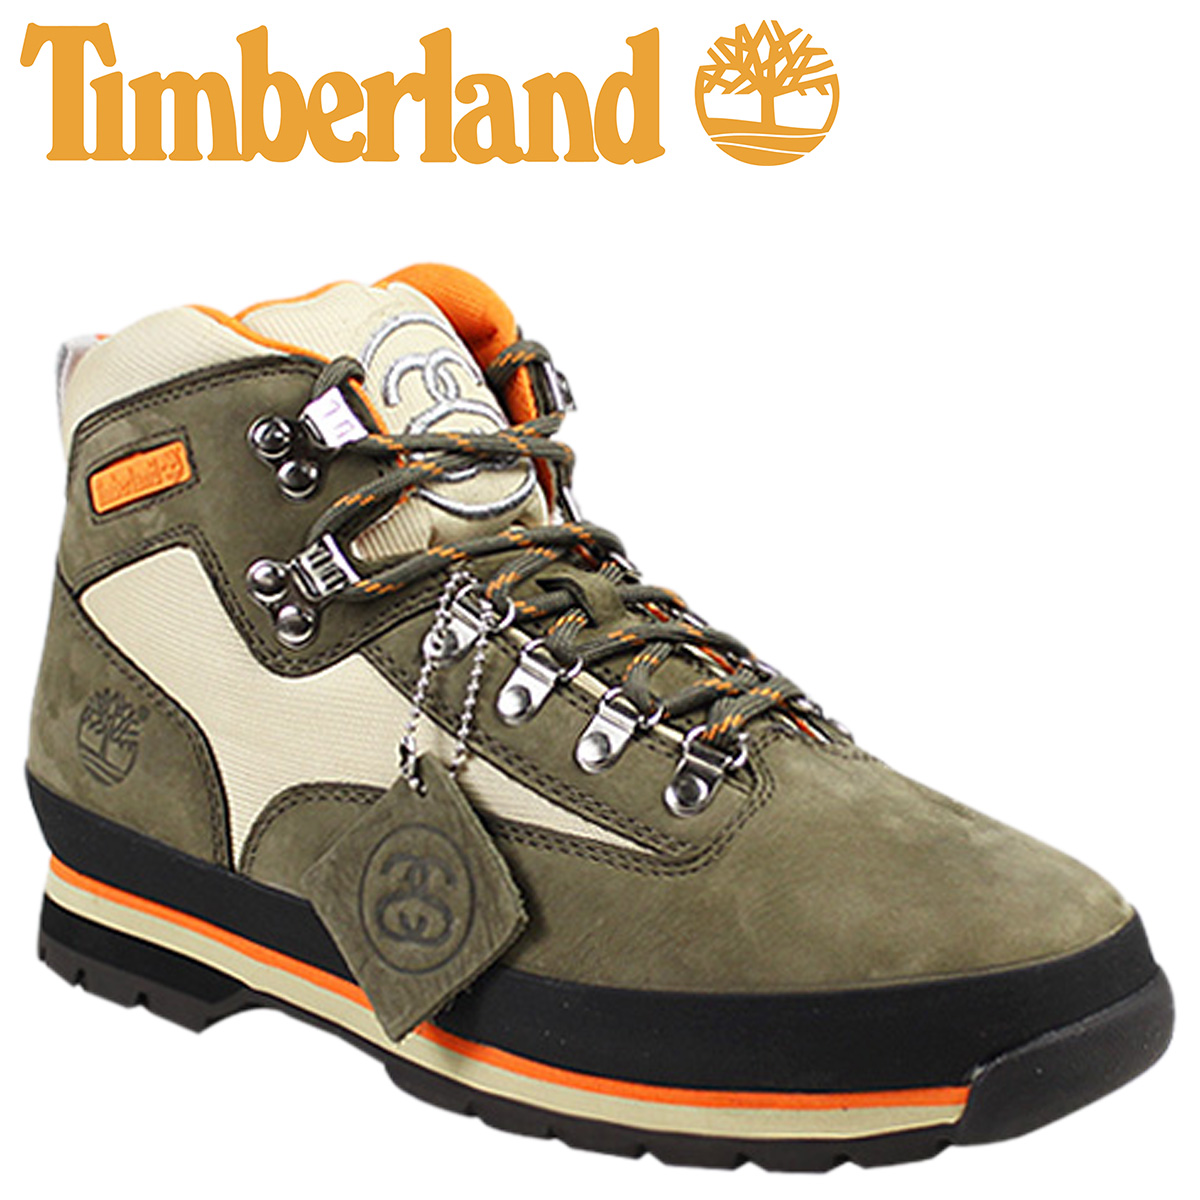 78fd13479fd2  SOLD OUT  Timberland STUSSY Timberland euro hiker boots EURO HIKER BOOT  nubuck men s collaboration with W name 6238A Brown